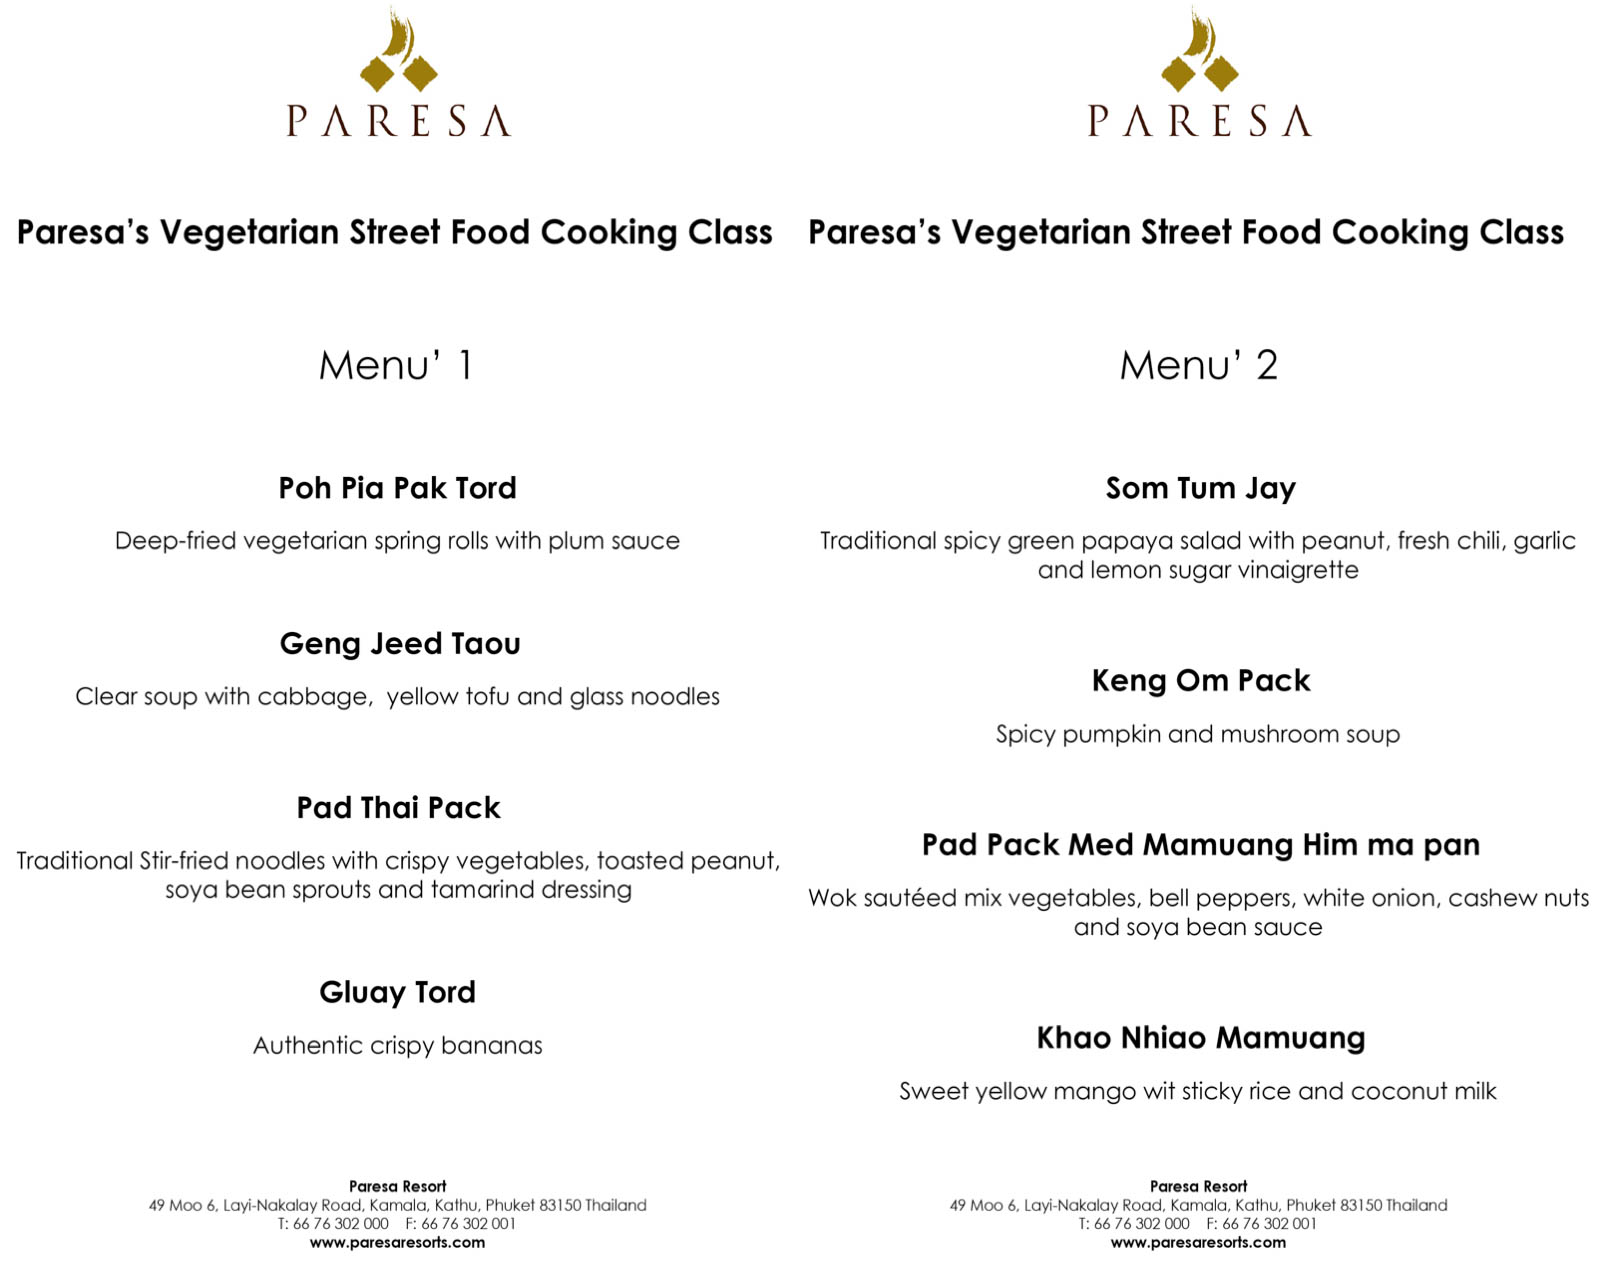 Paresa Resort Vegetarian Cooking Class Menu